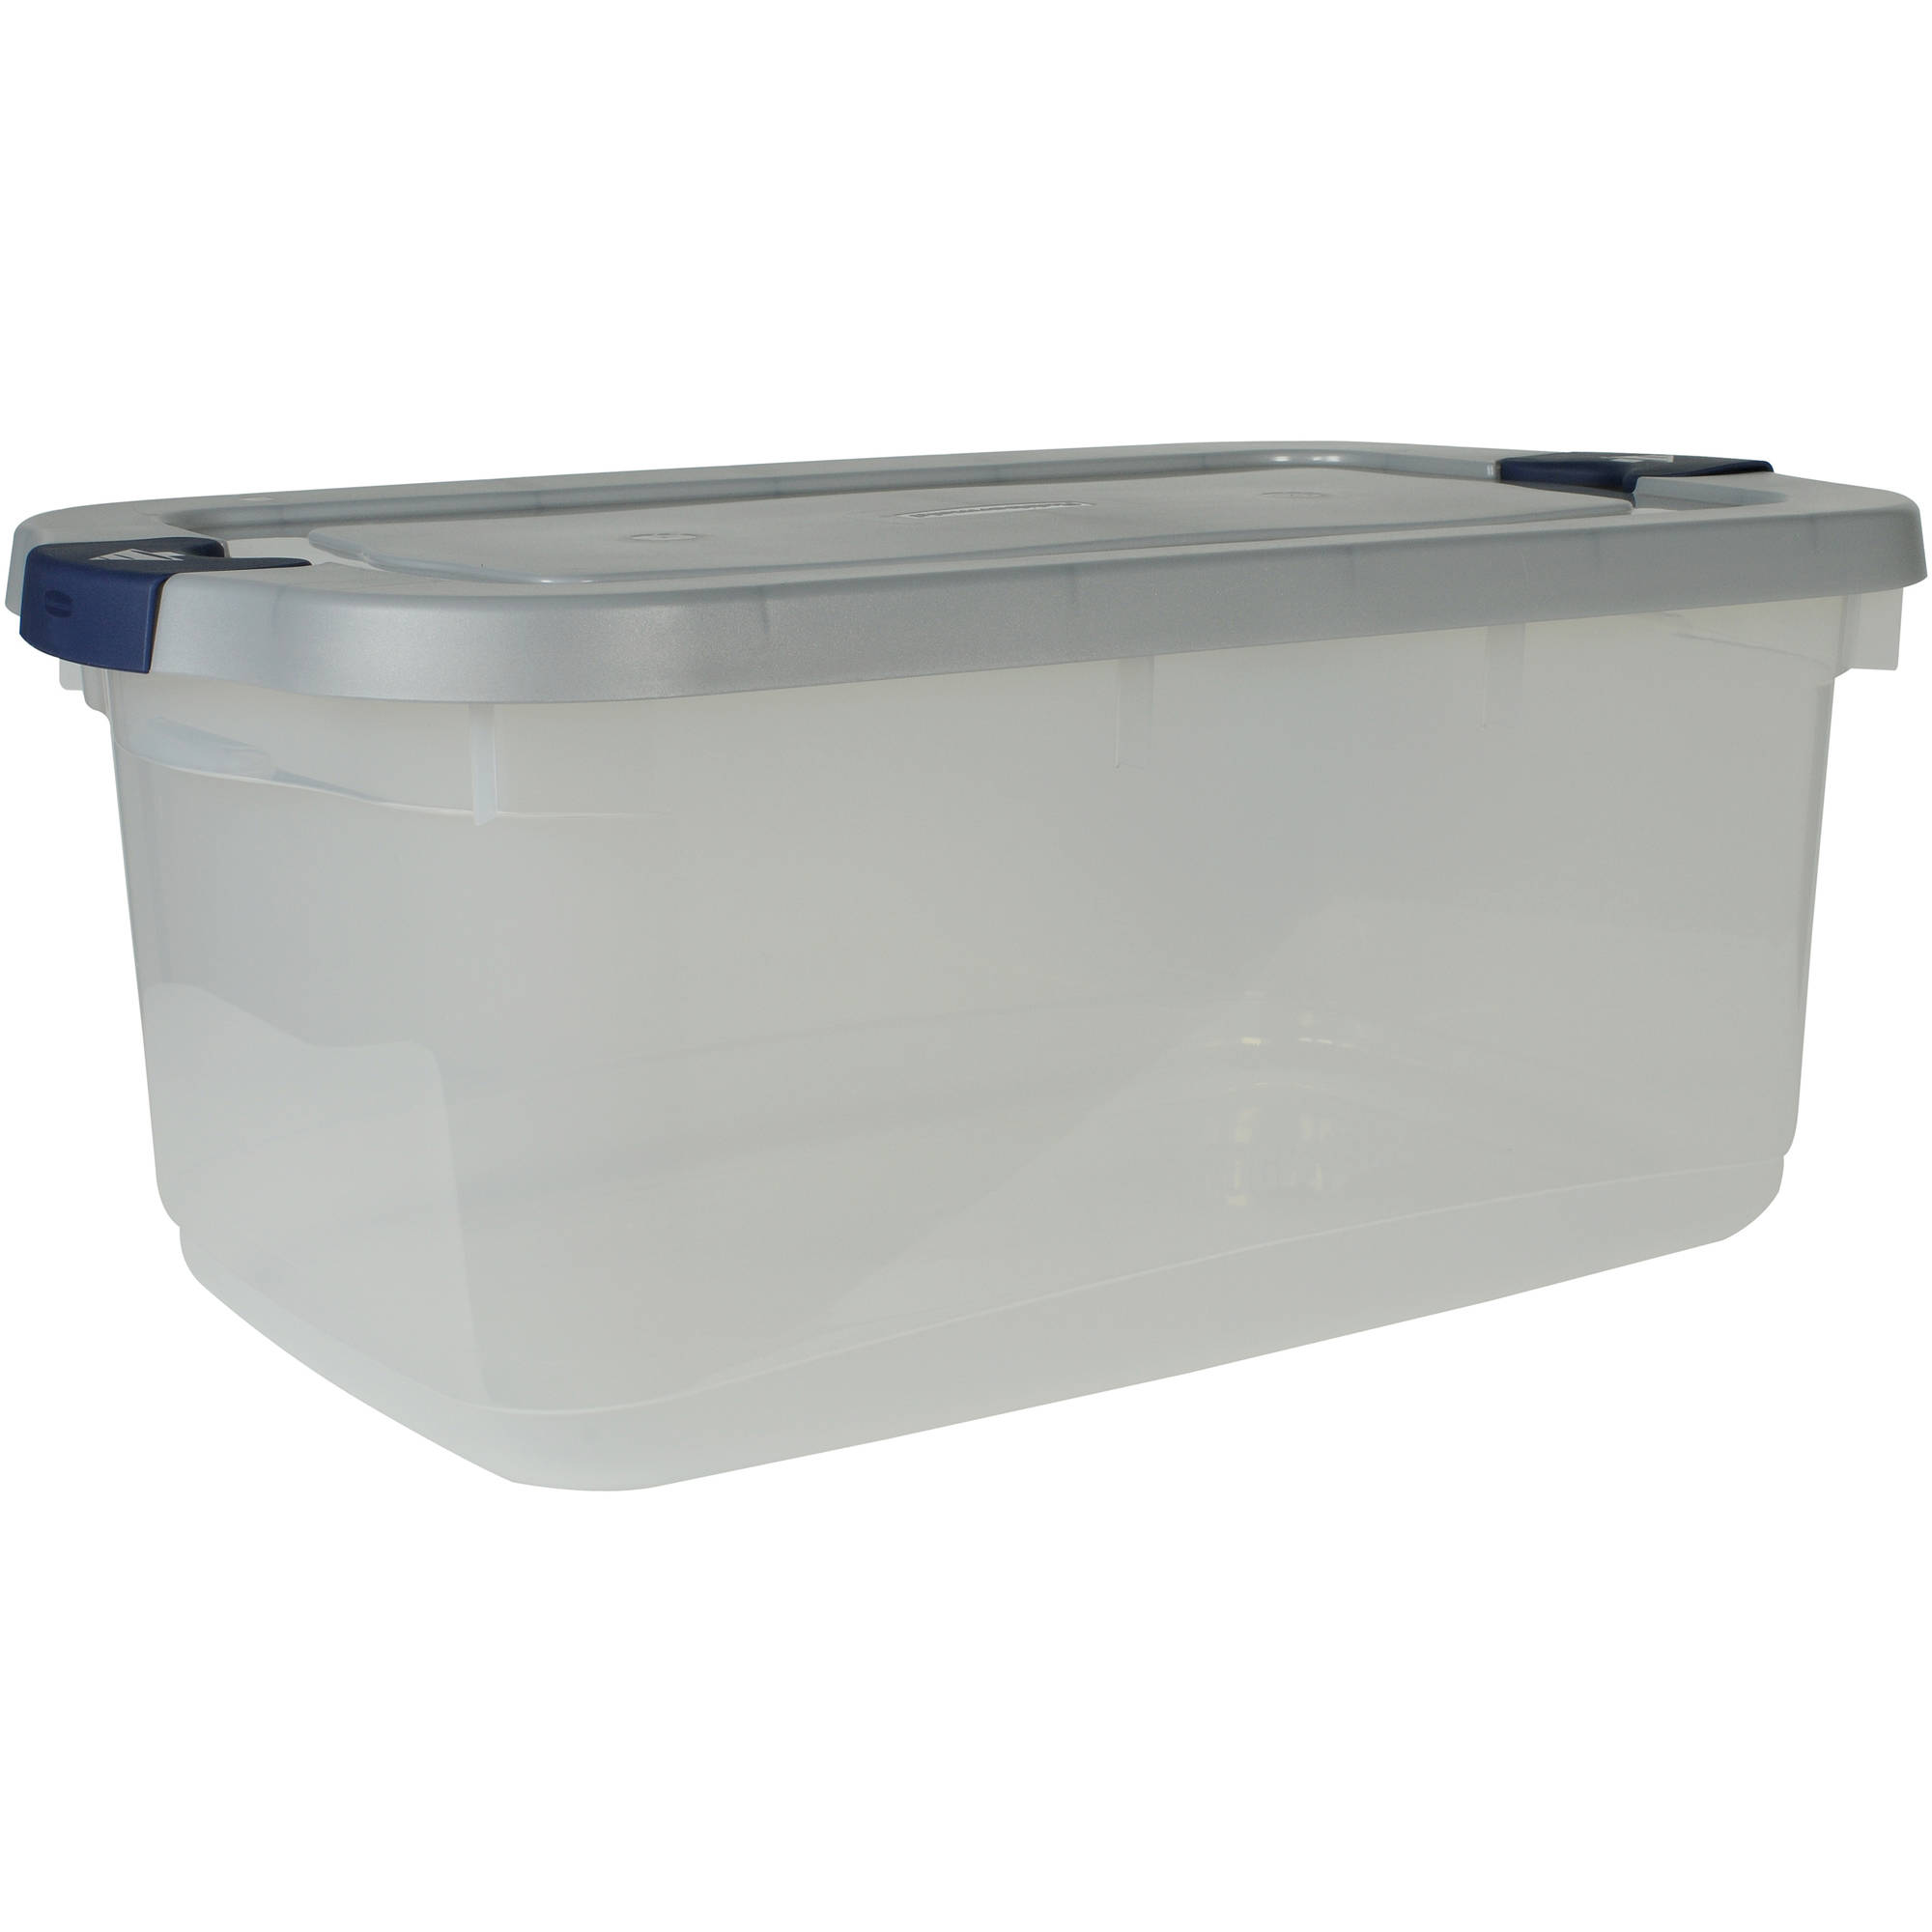 rubbermaid roughneck clear storage tote bins 50 qt 125 gal clear with